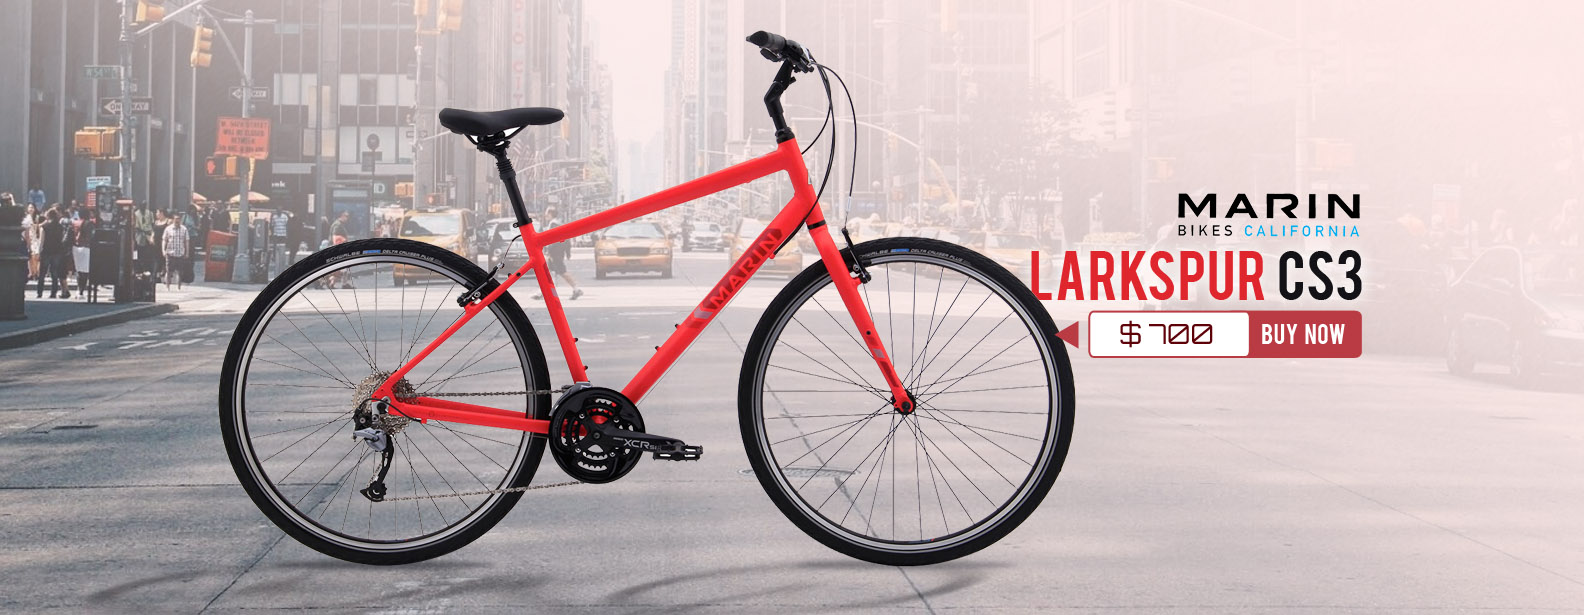 Marin Larkspur CS3 Bike